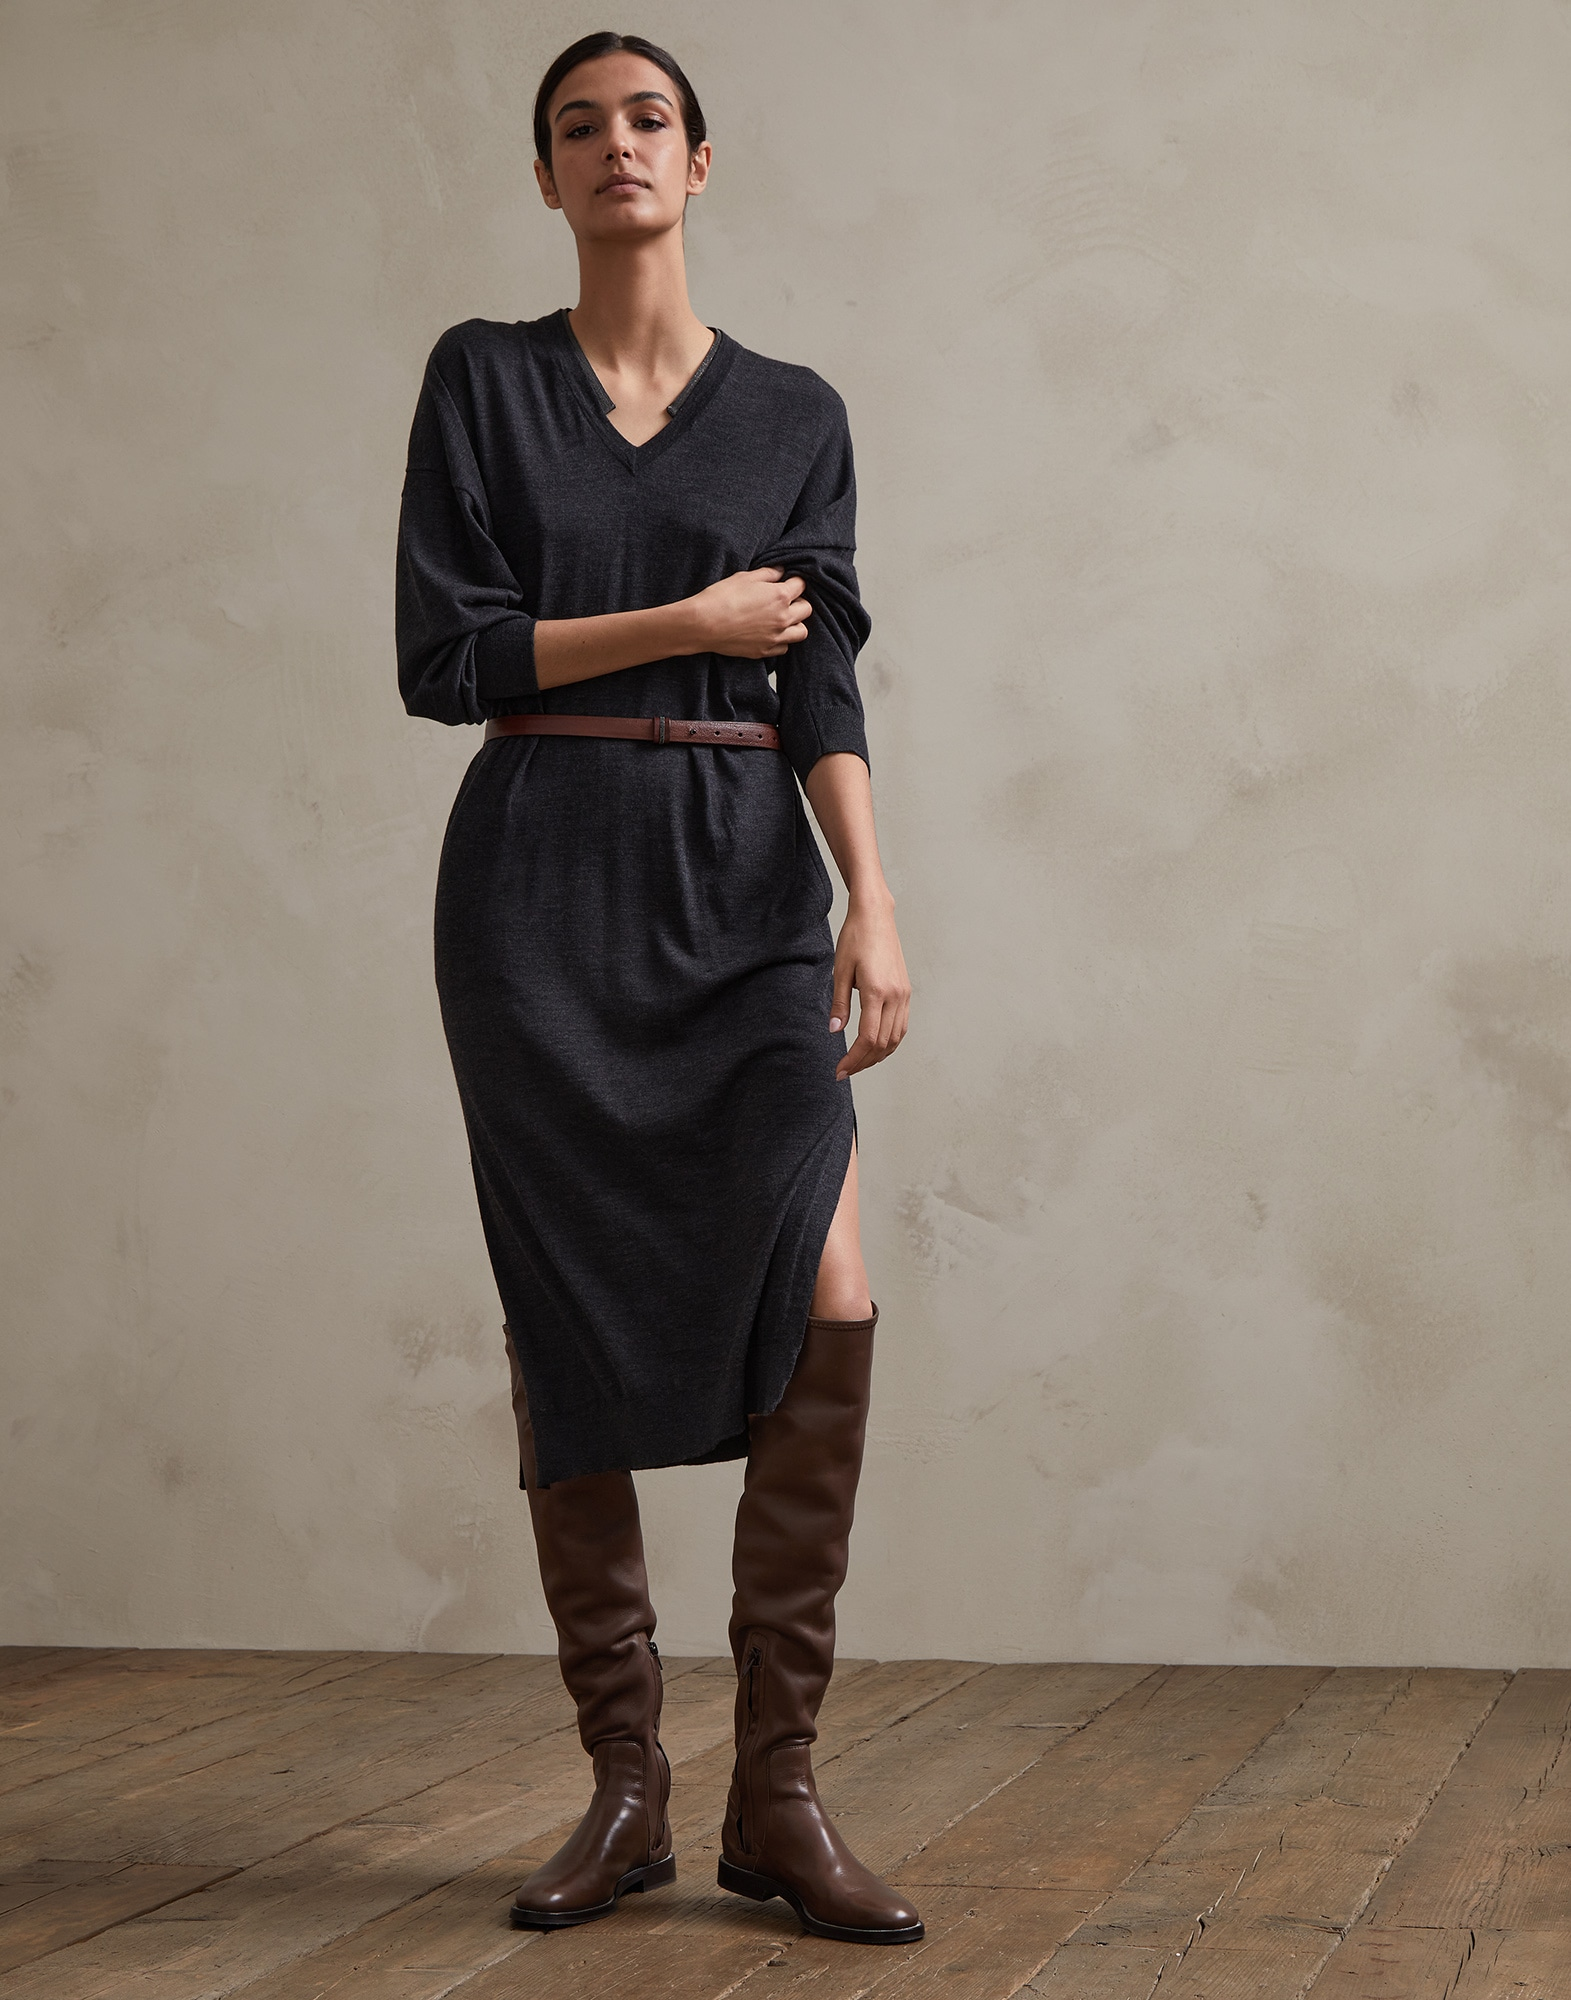 Dress Anthracite Woman 1 - Brunello Cucinelli